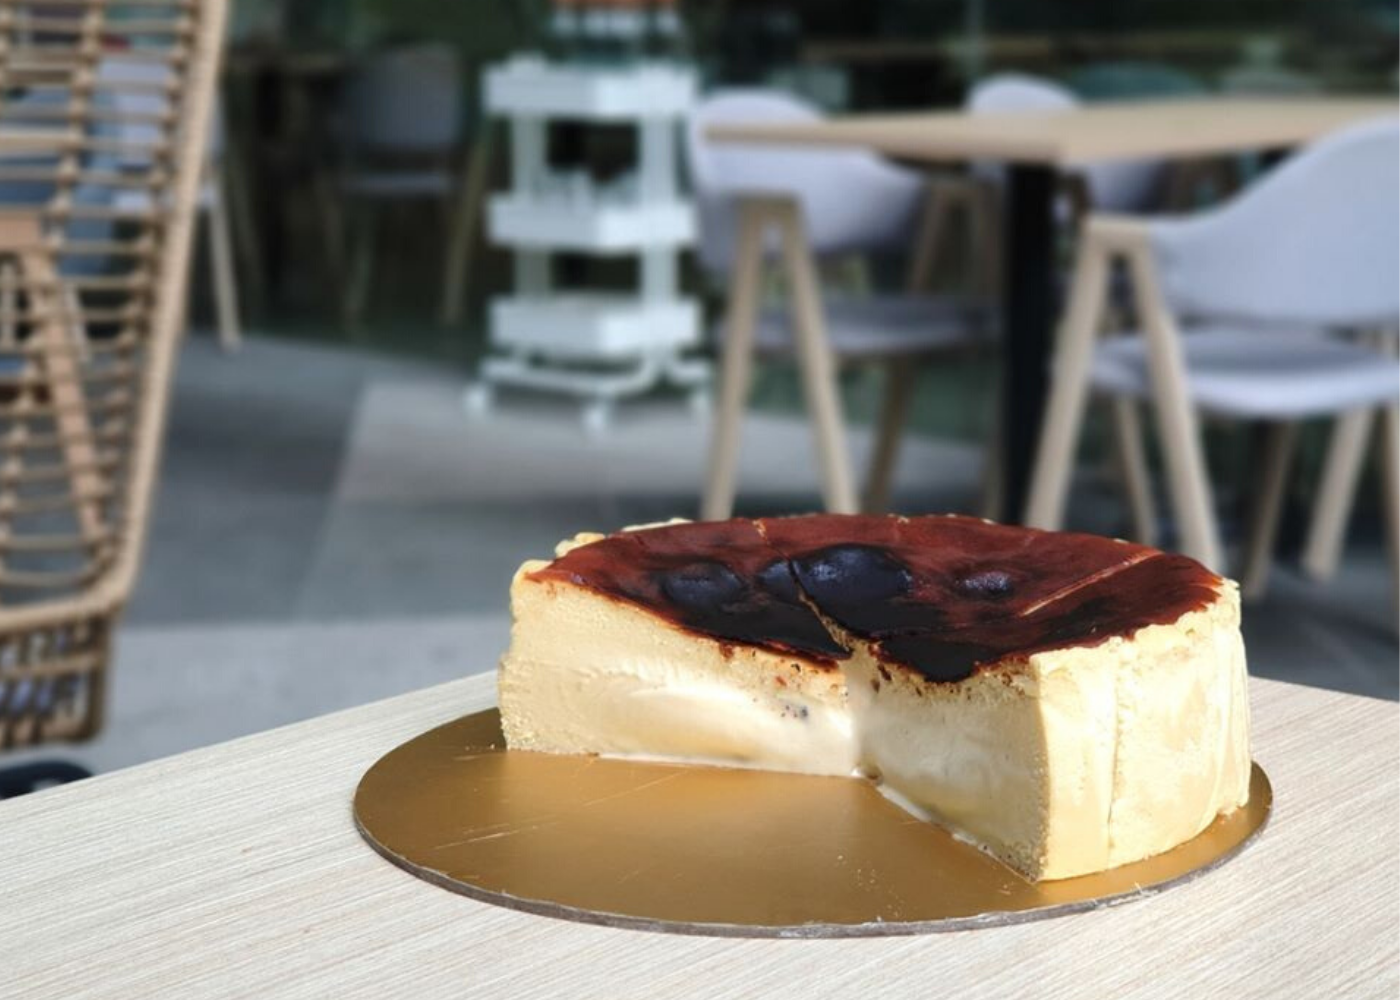 The hunt is on for the best burnt cheesecake in Singapore